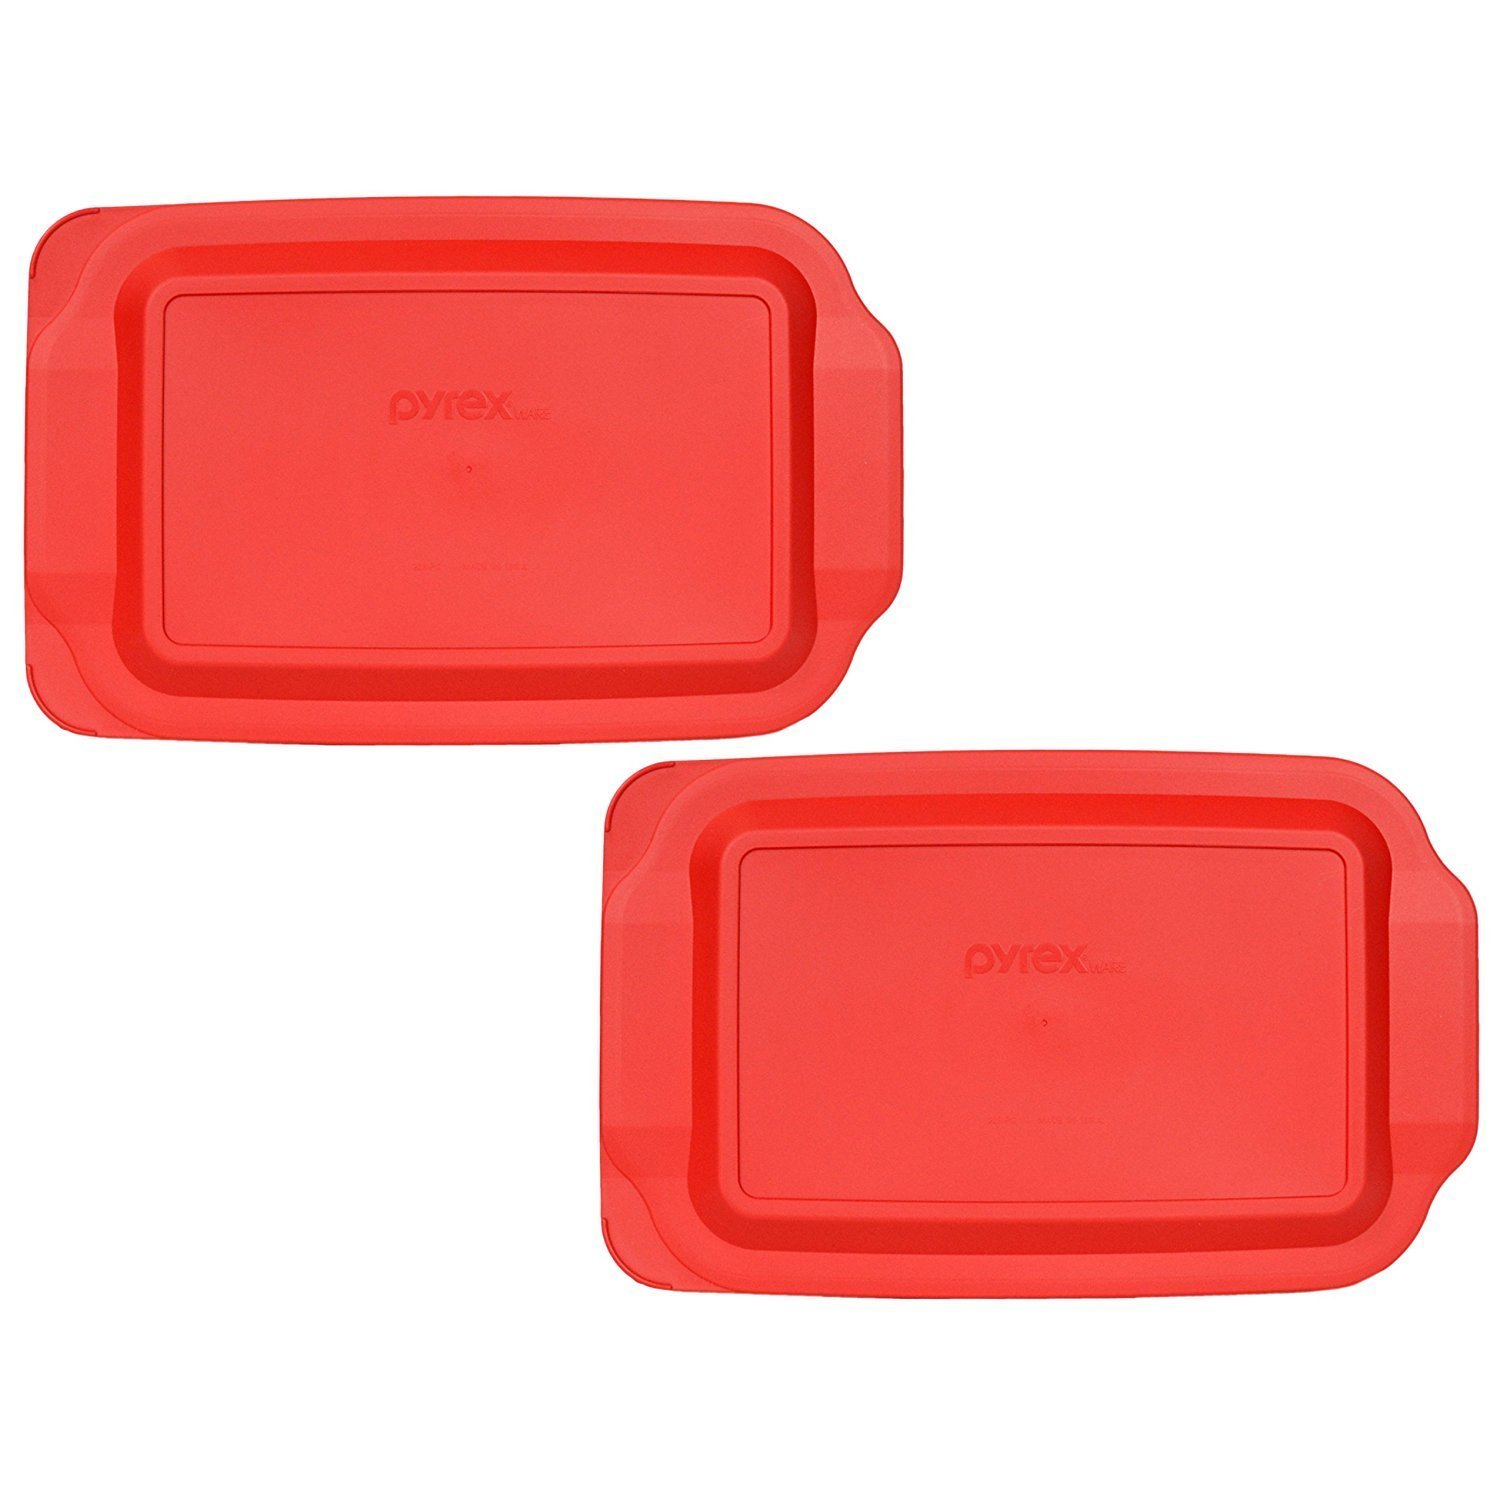 "(2) Pyrex 233-PC 3 Quart Red 9"" x 13"" Baking Dish Lids - Will NOT Fit Easy Grab Baking Dish (See Bullets Bellow) 71Q39IhT87L"